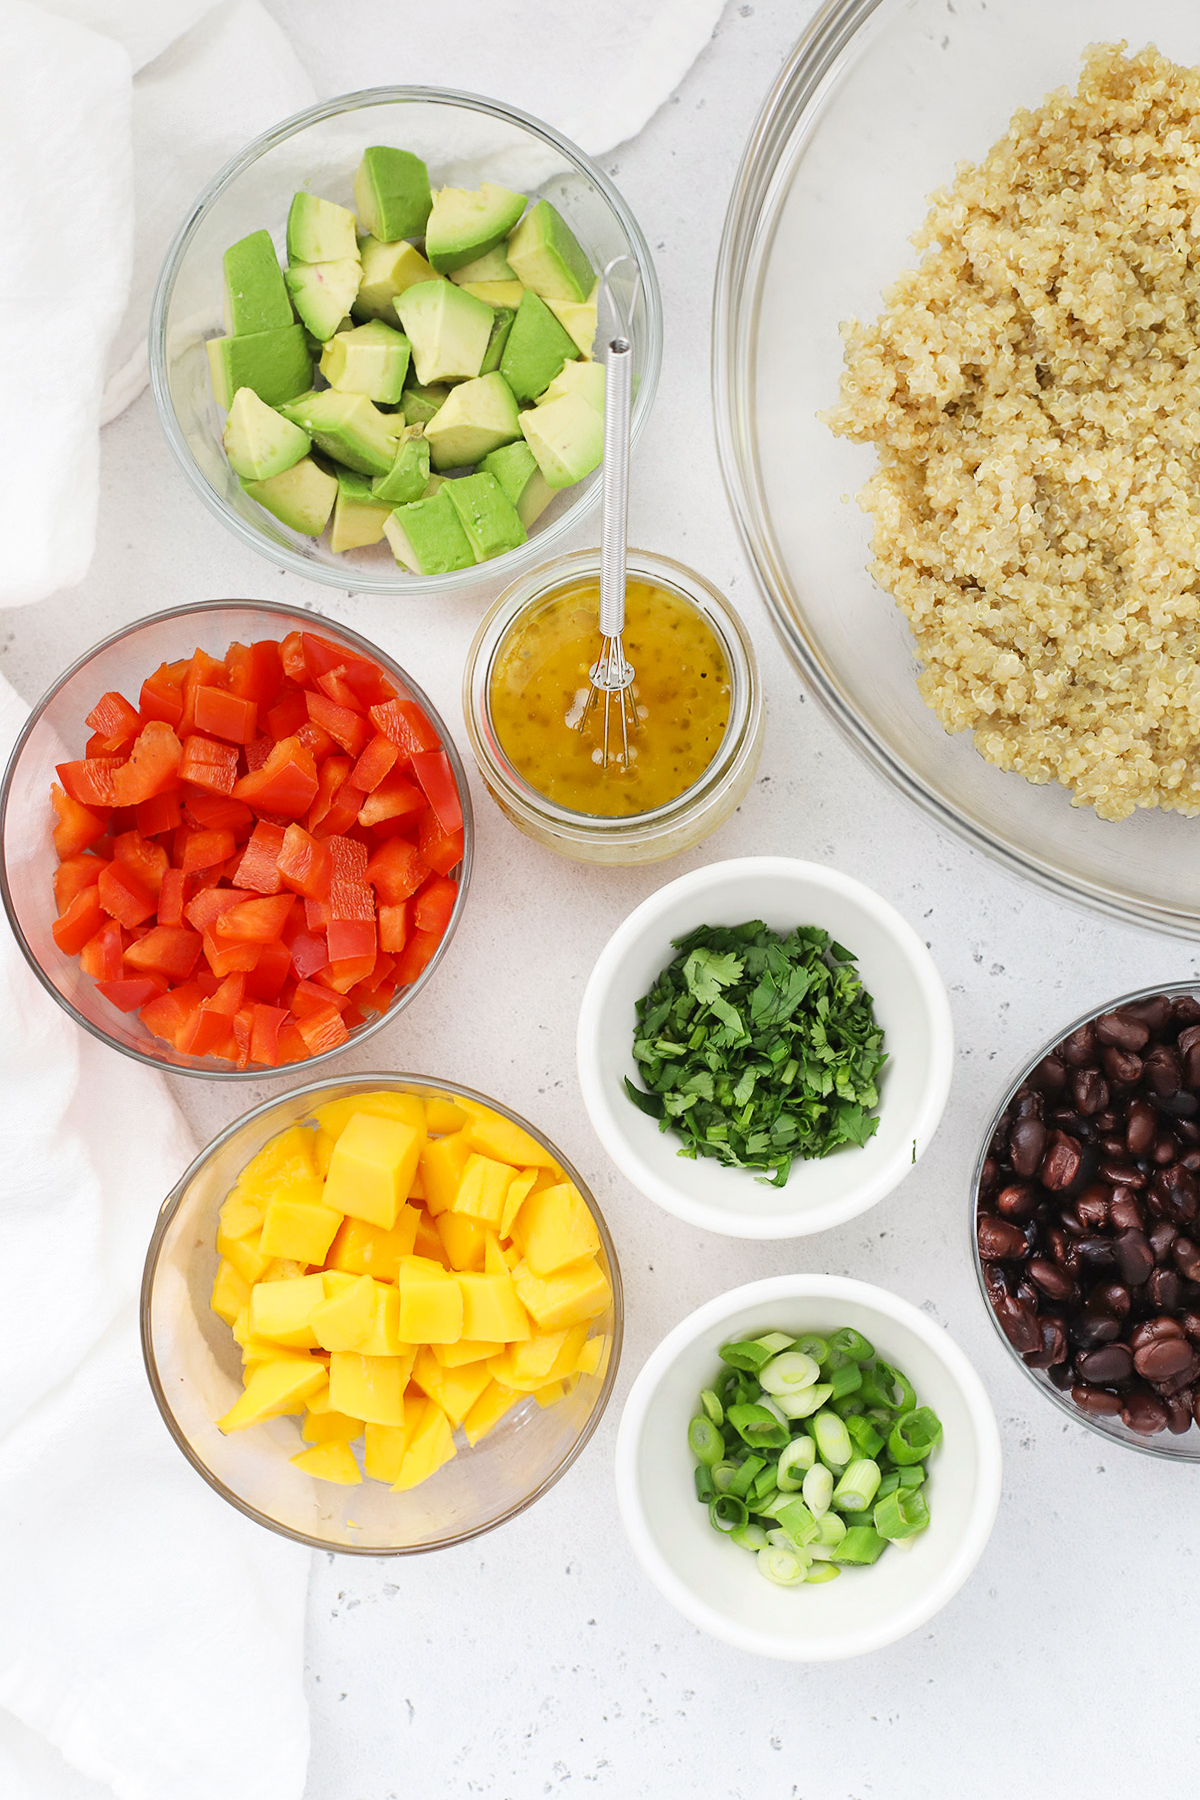 Overhead view of bowls of ingredients for Confetti Quinoa Salad